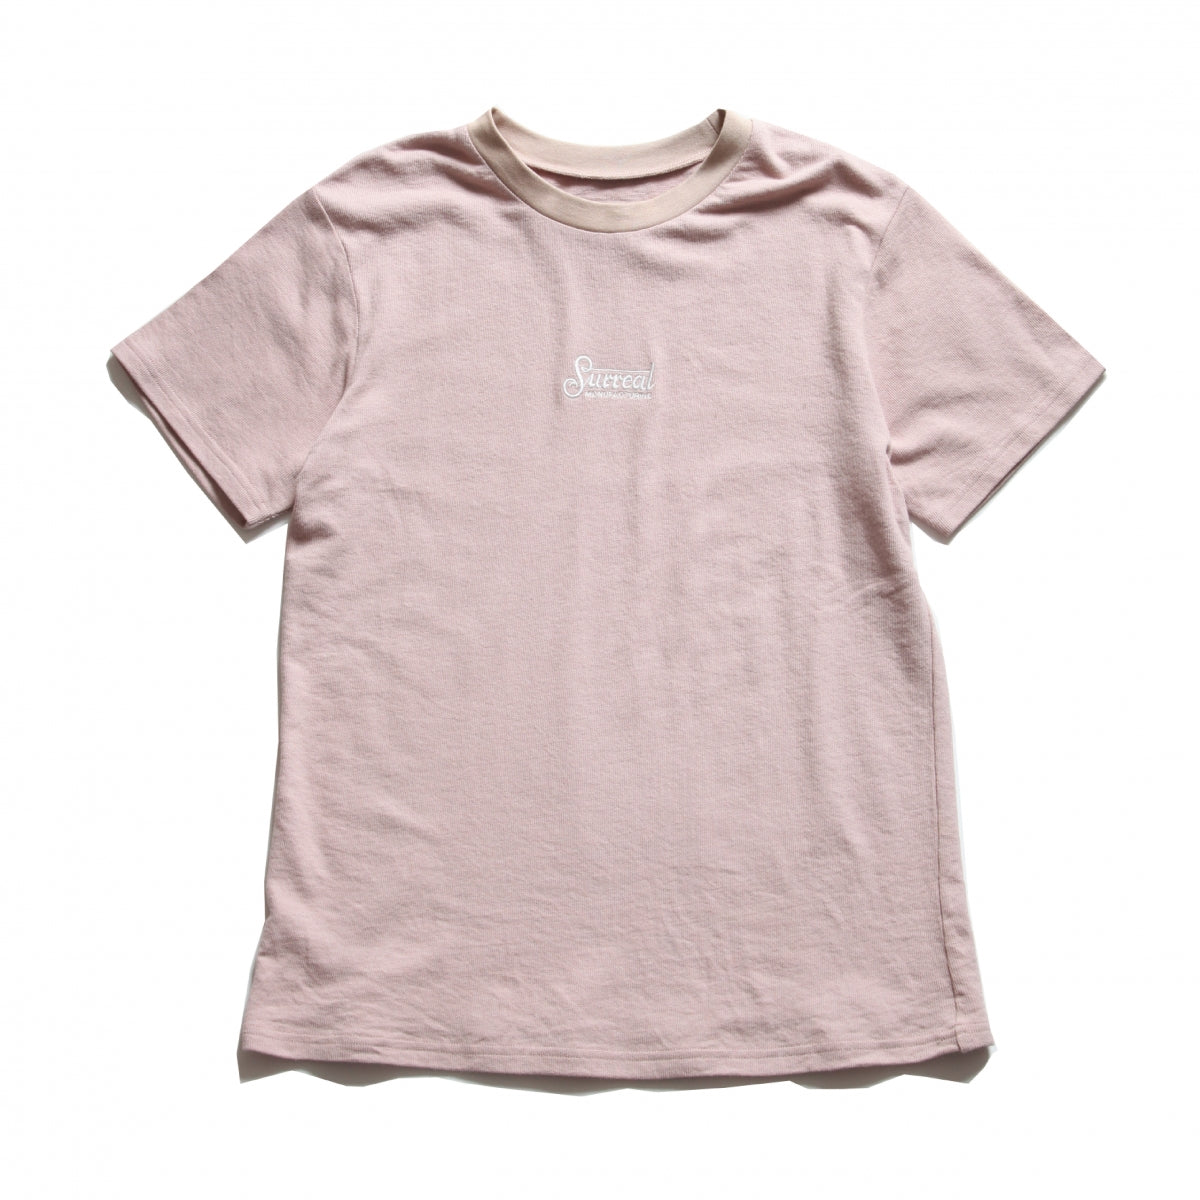 Percy_Summer Knit T-Shirt